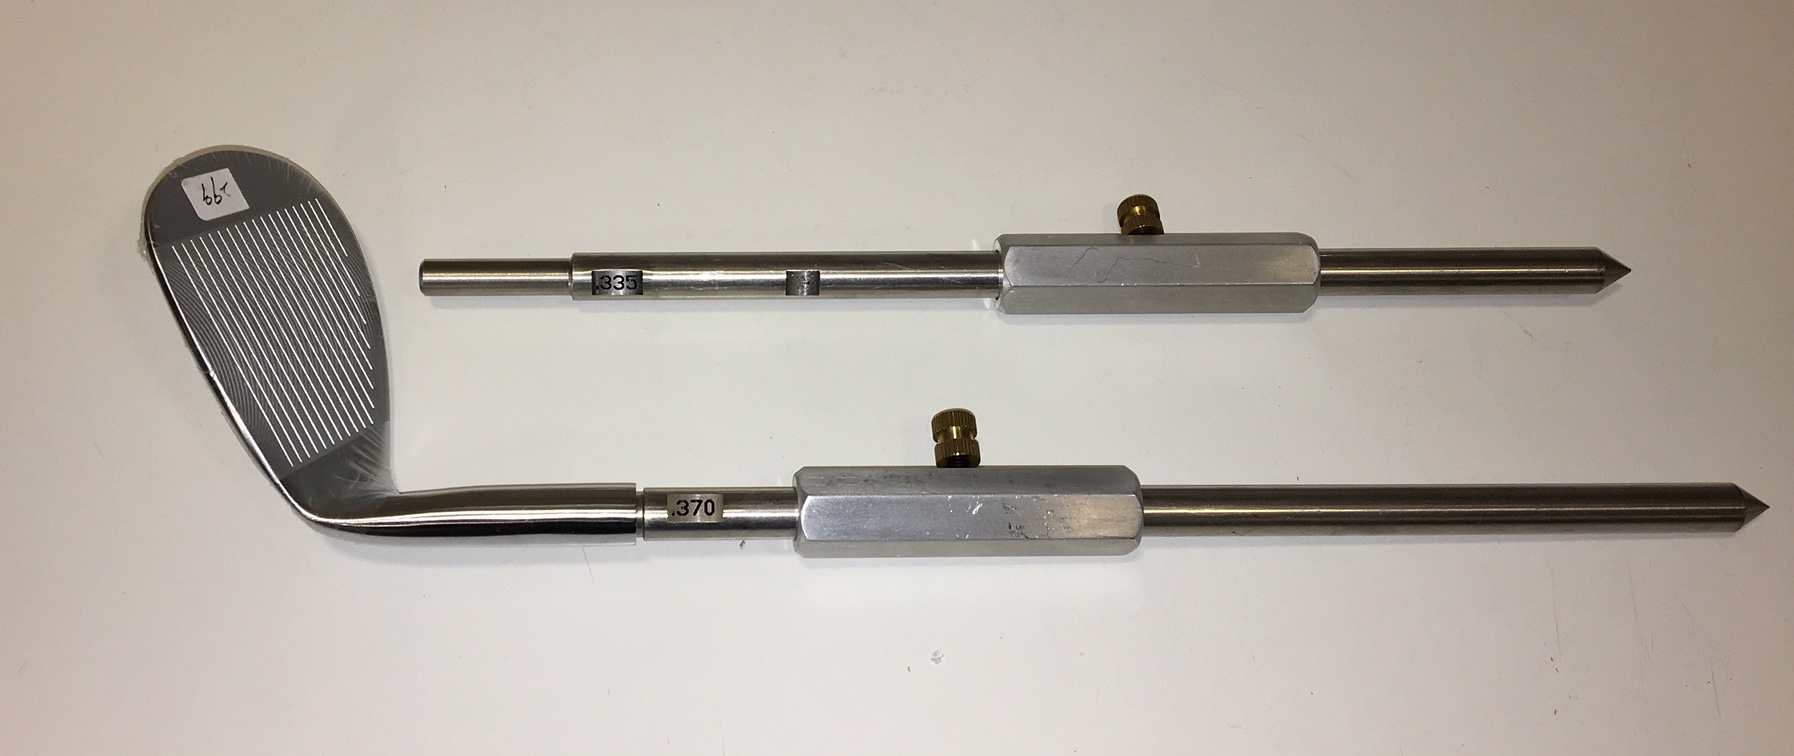 Hosel wall support rods